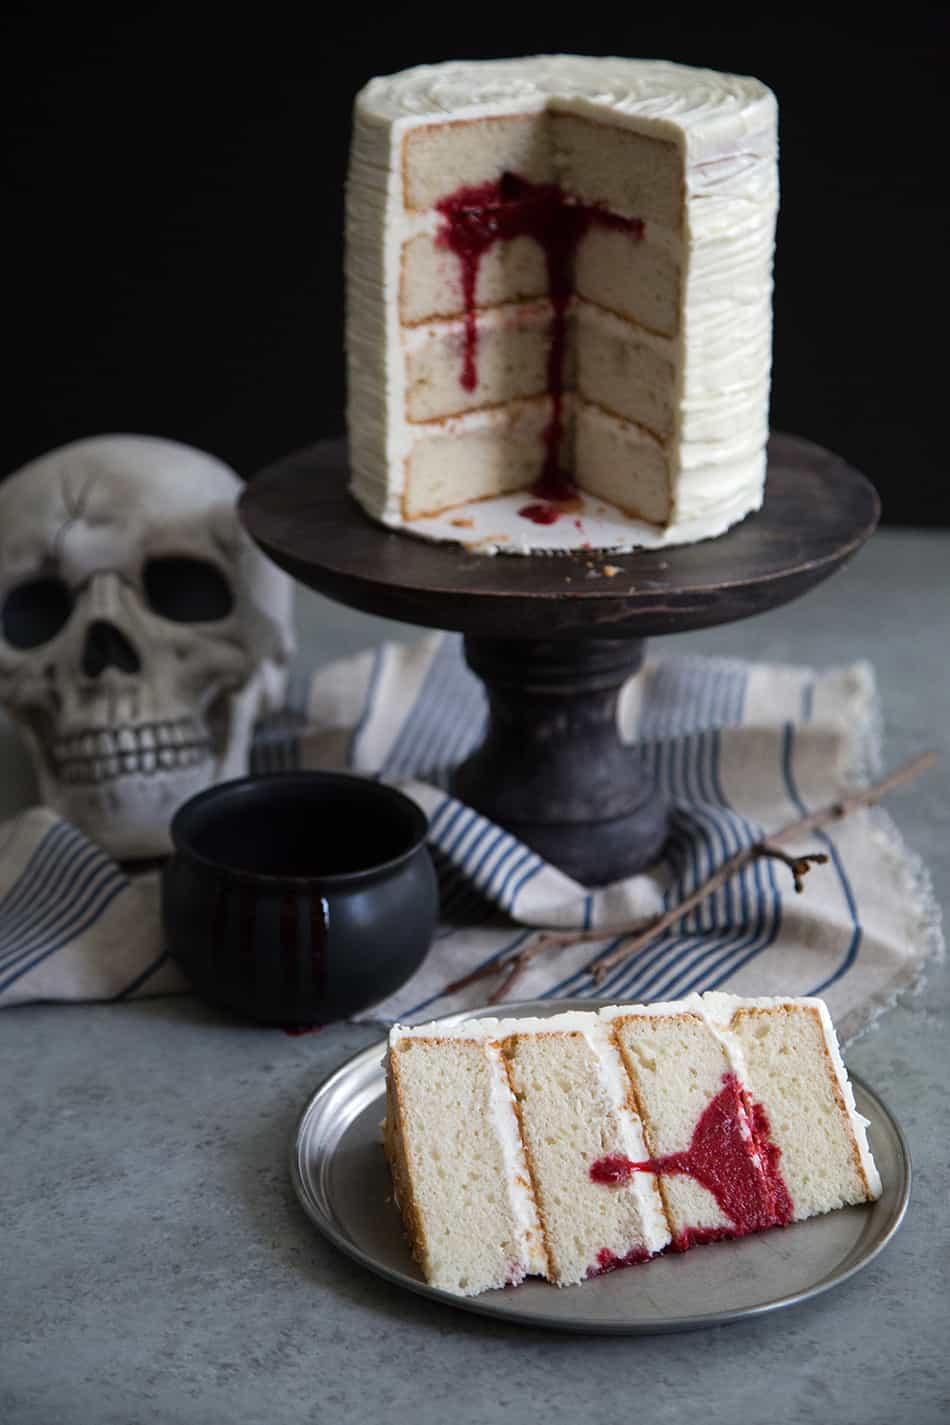 Surprise Bloody Cake Vanilla Cake Wtih Raspberry The